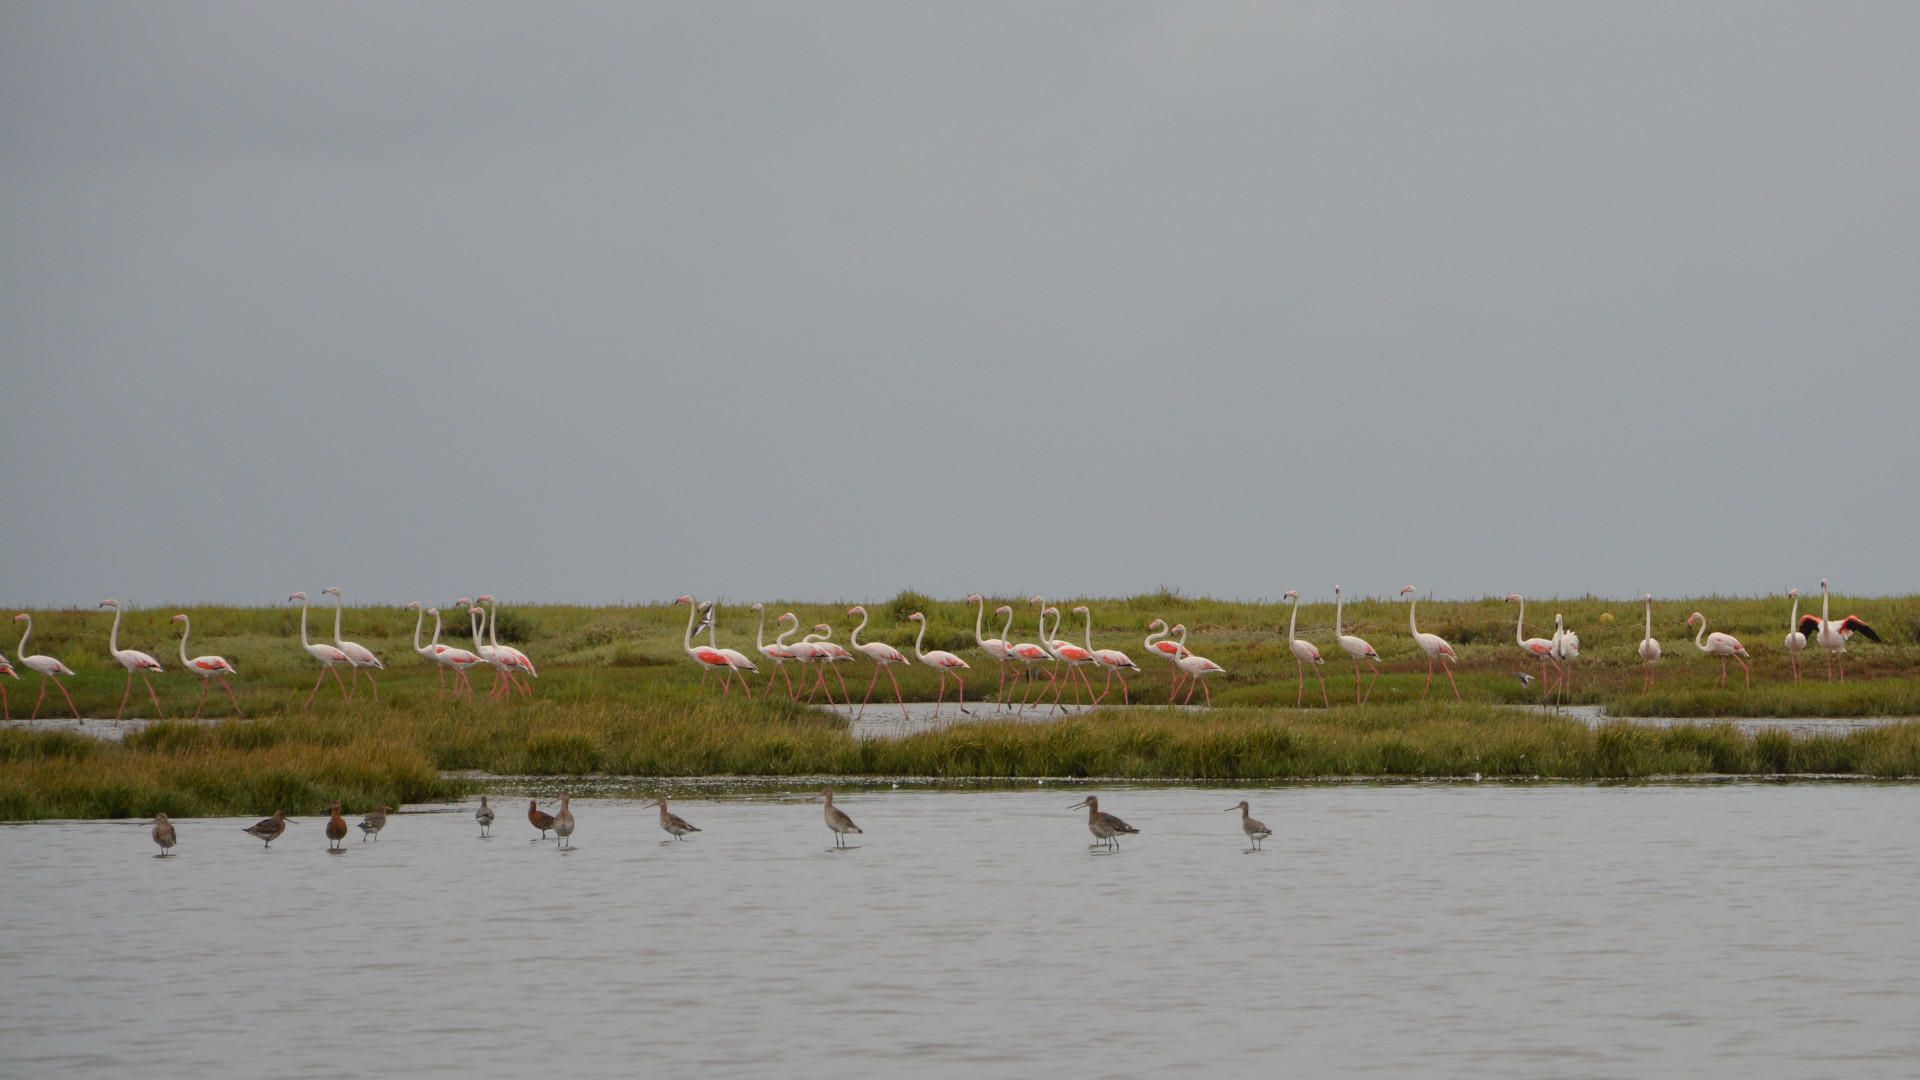 Flamingos e maçaricos na Reserva Natural do Estuário do Tejo